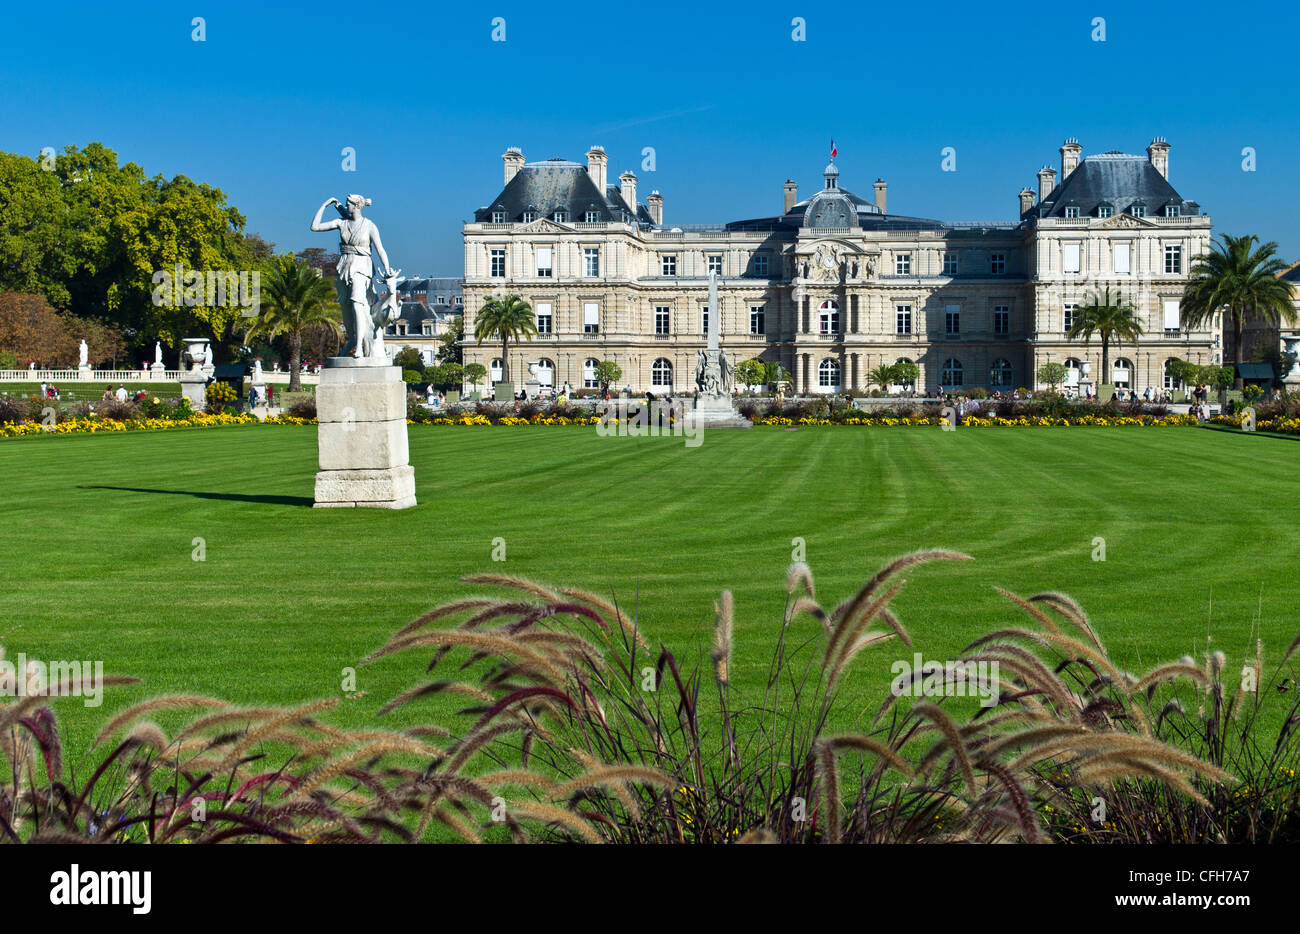 France, Paris, 6th arrondissement, Palais du Luxembourg or Senate - Stock Image